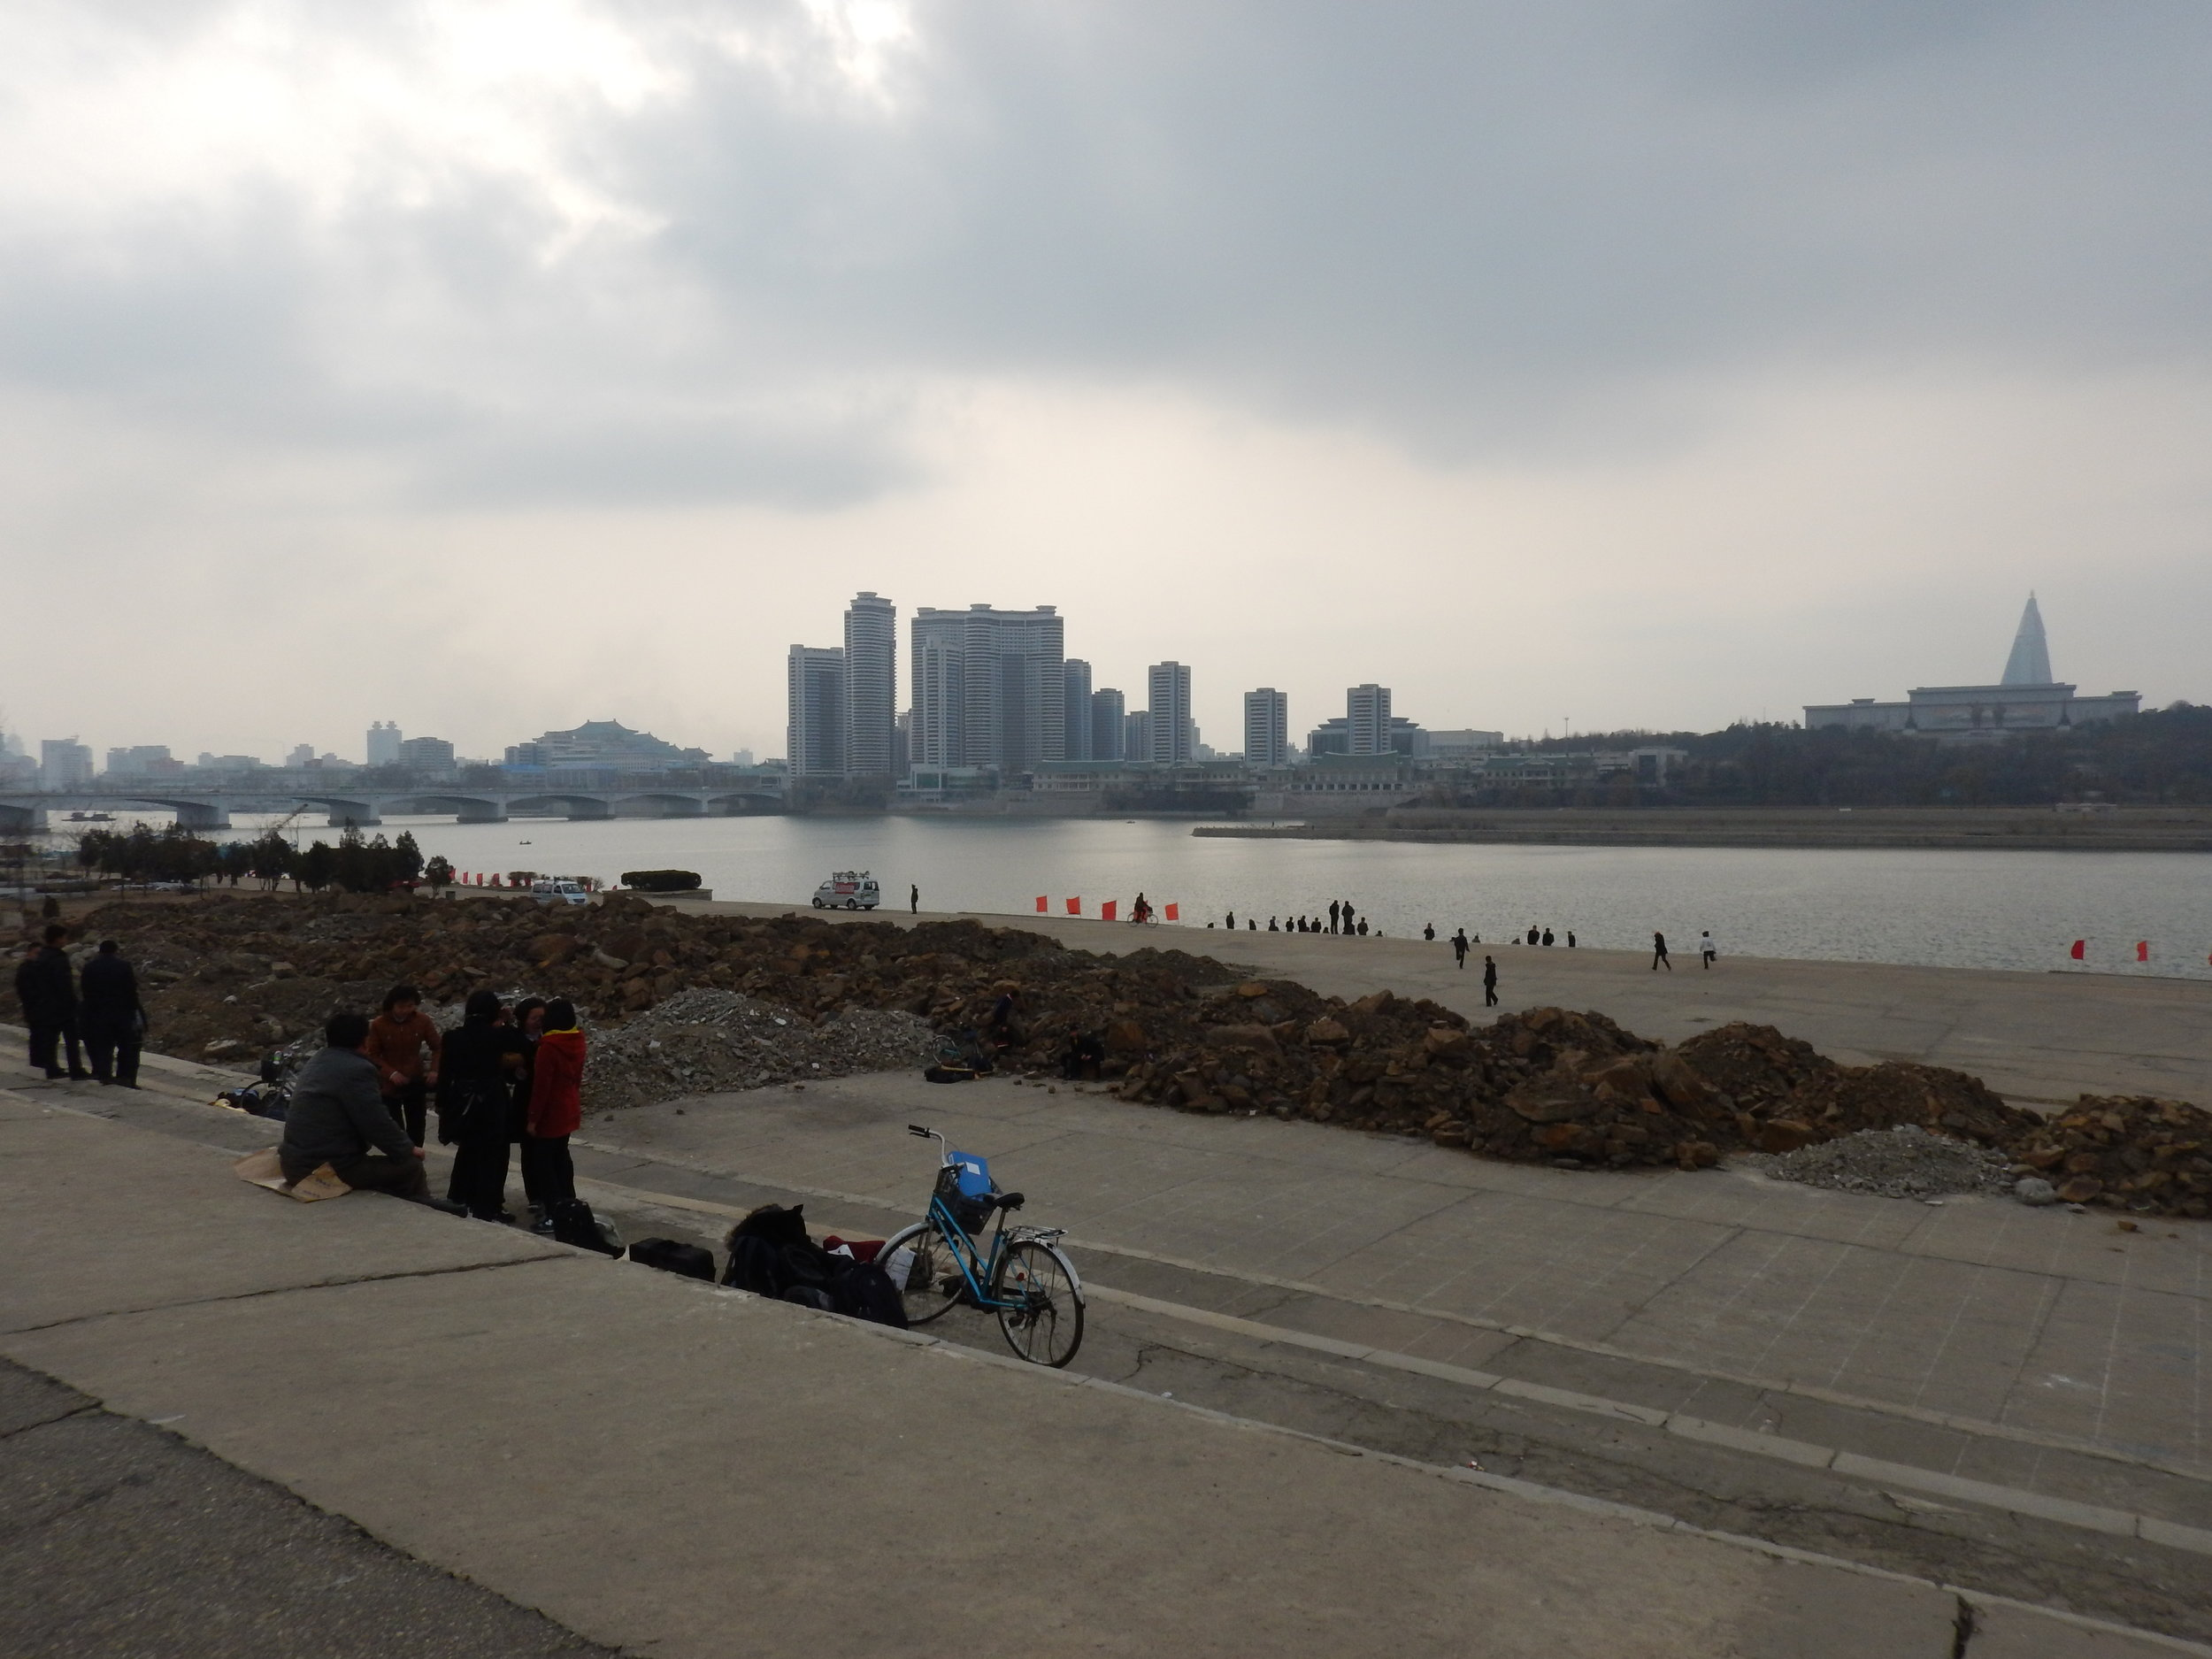 A view of the Taedong River as seen from the eastern bank, which was undergoing renovation in March 2016. This picture is actually illegal, as photographing construction sites is prohibited by North Korean law. (Photo by Ethan Jakob Craft.)